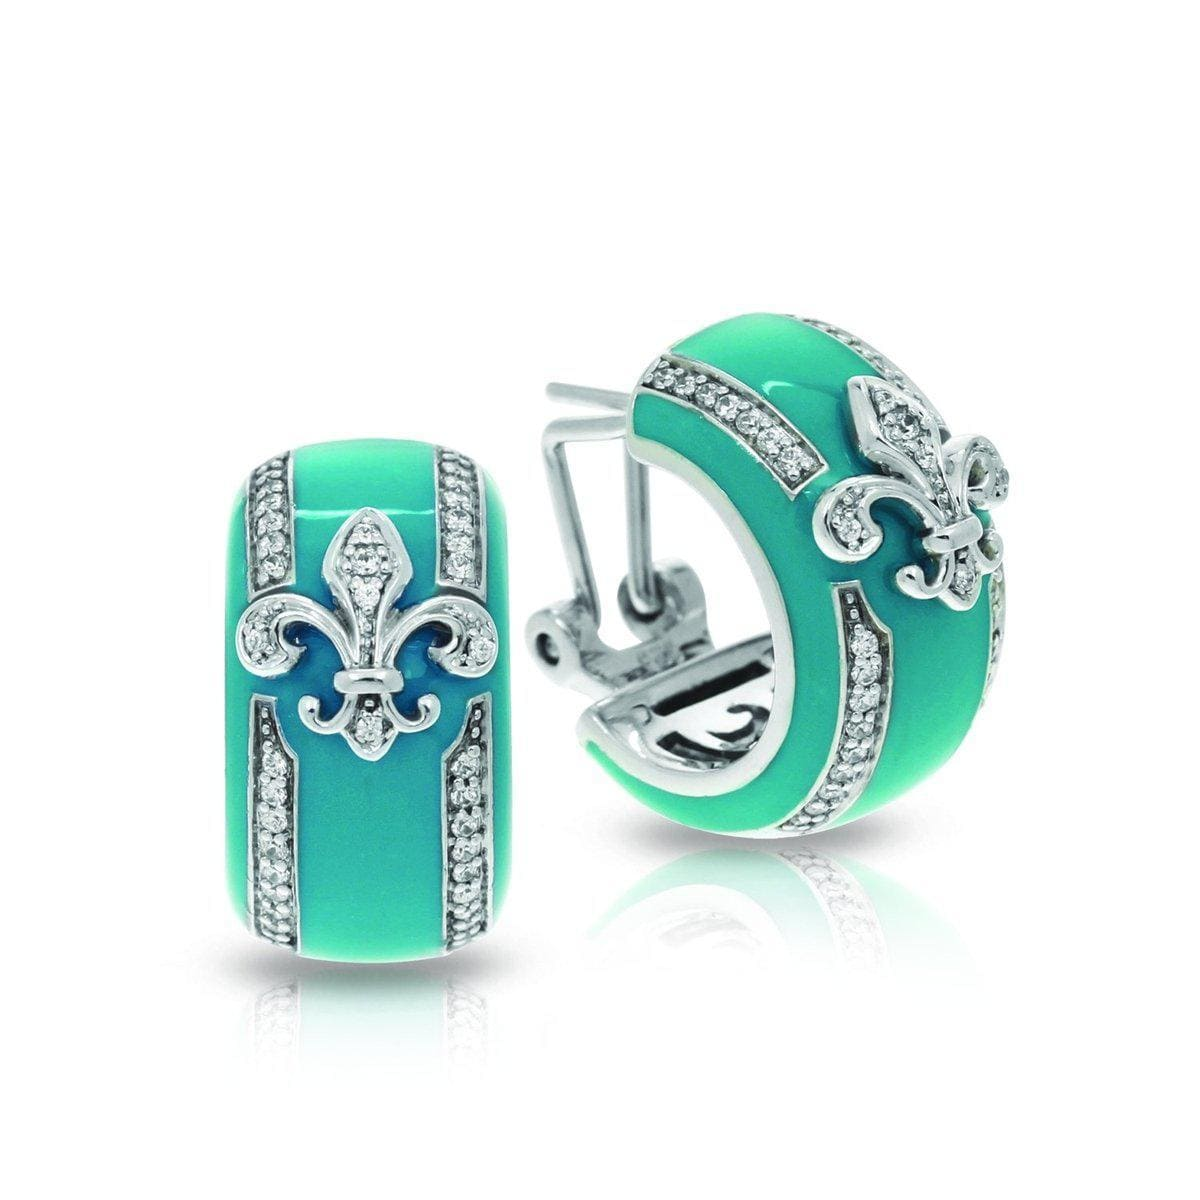 Fleur de Lis Teal Earrings